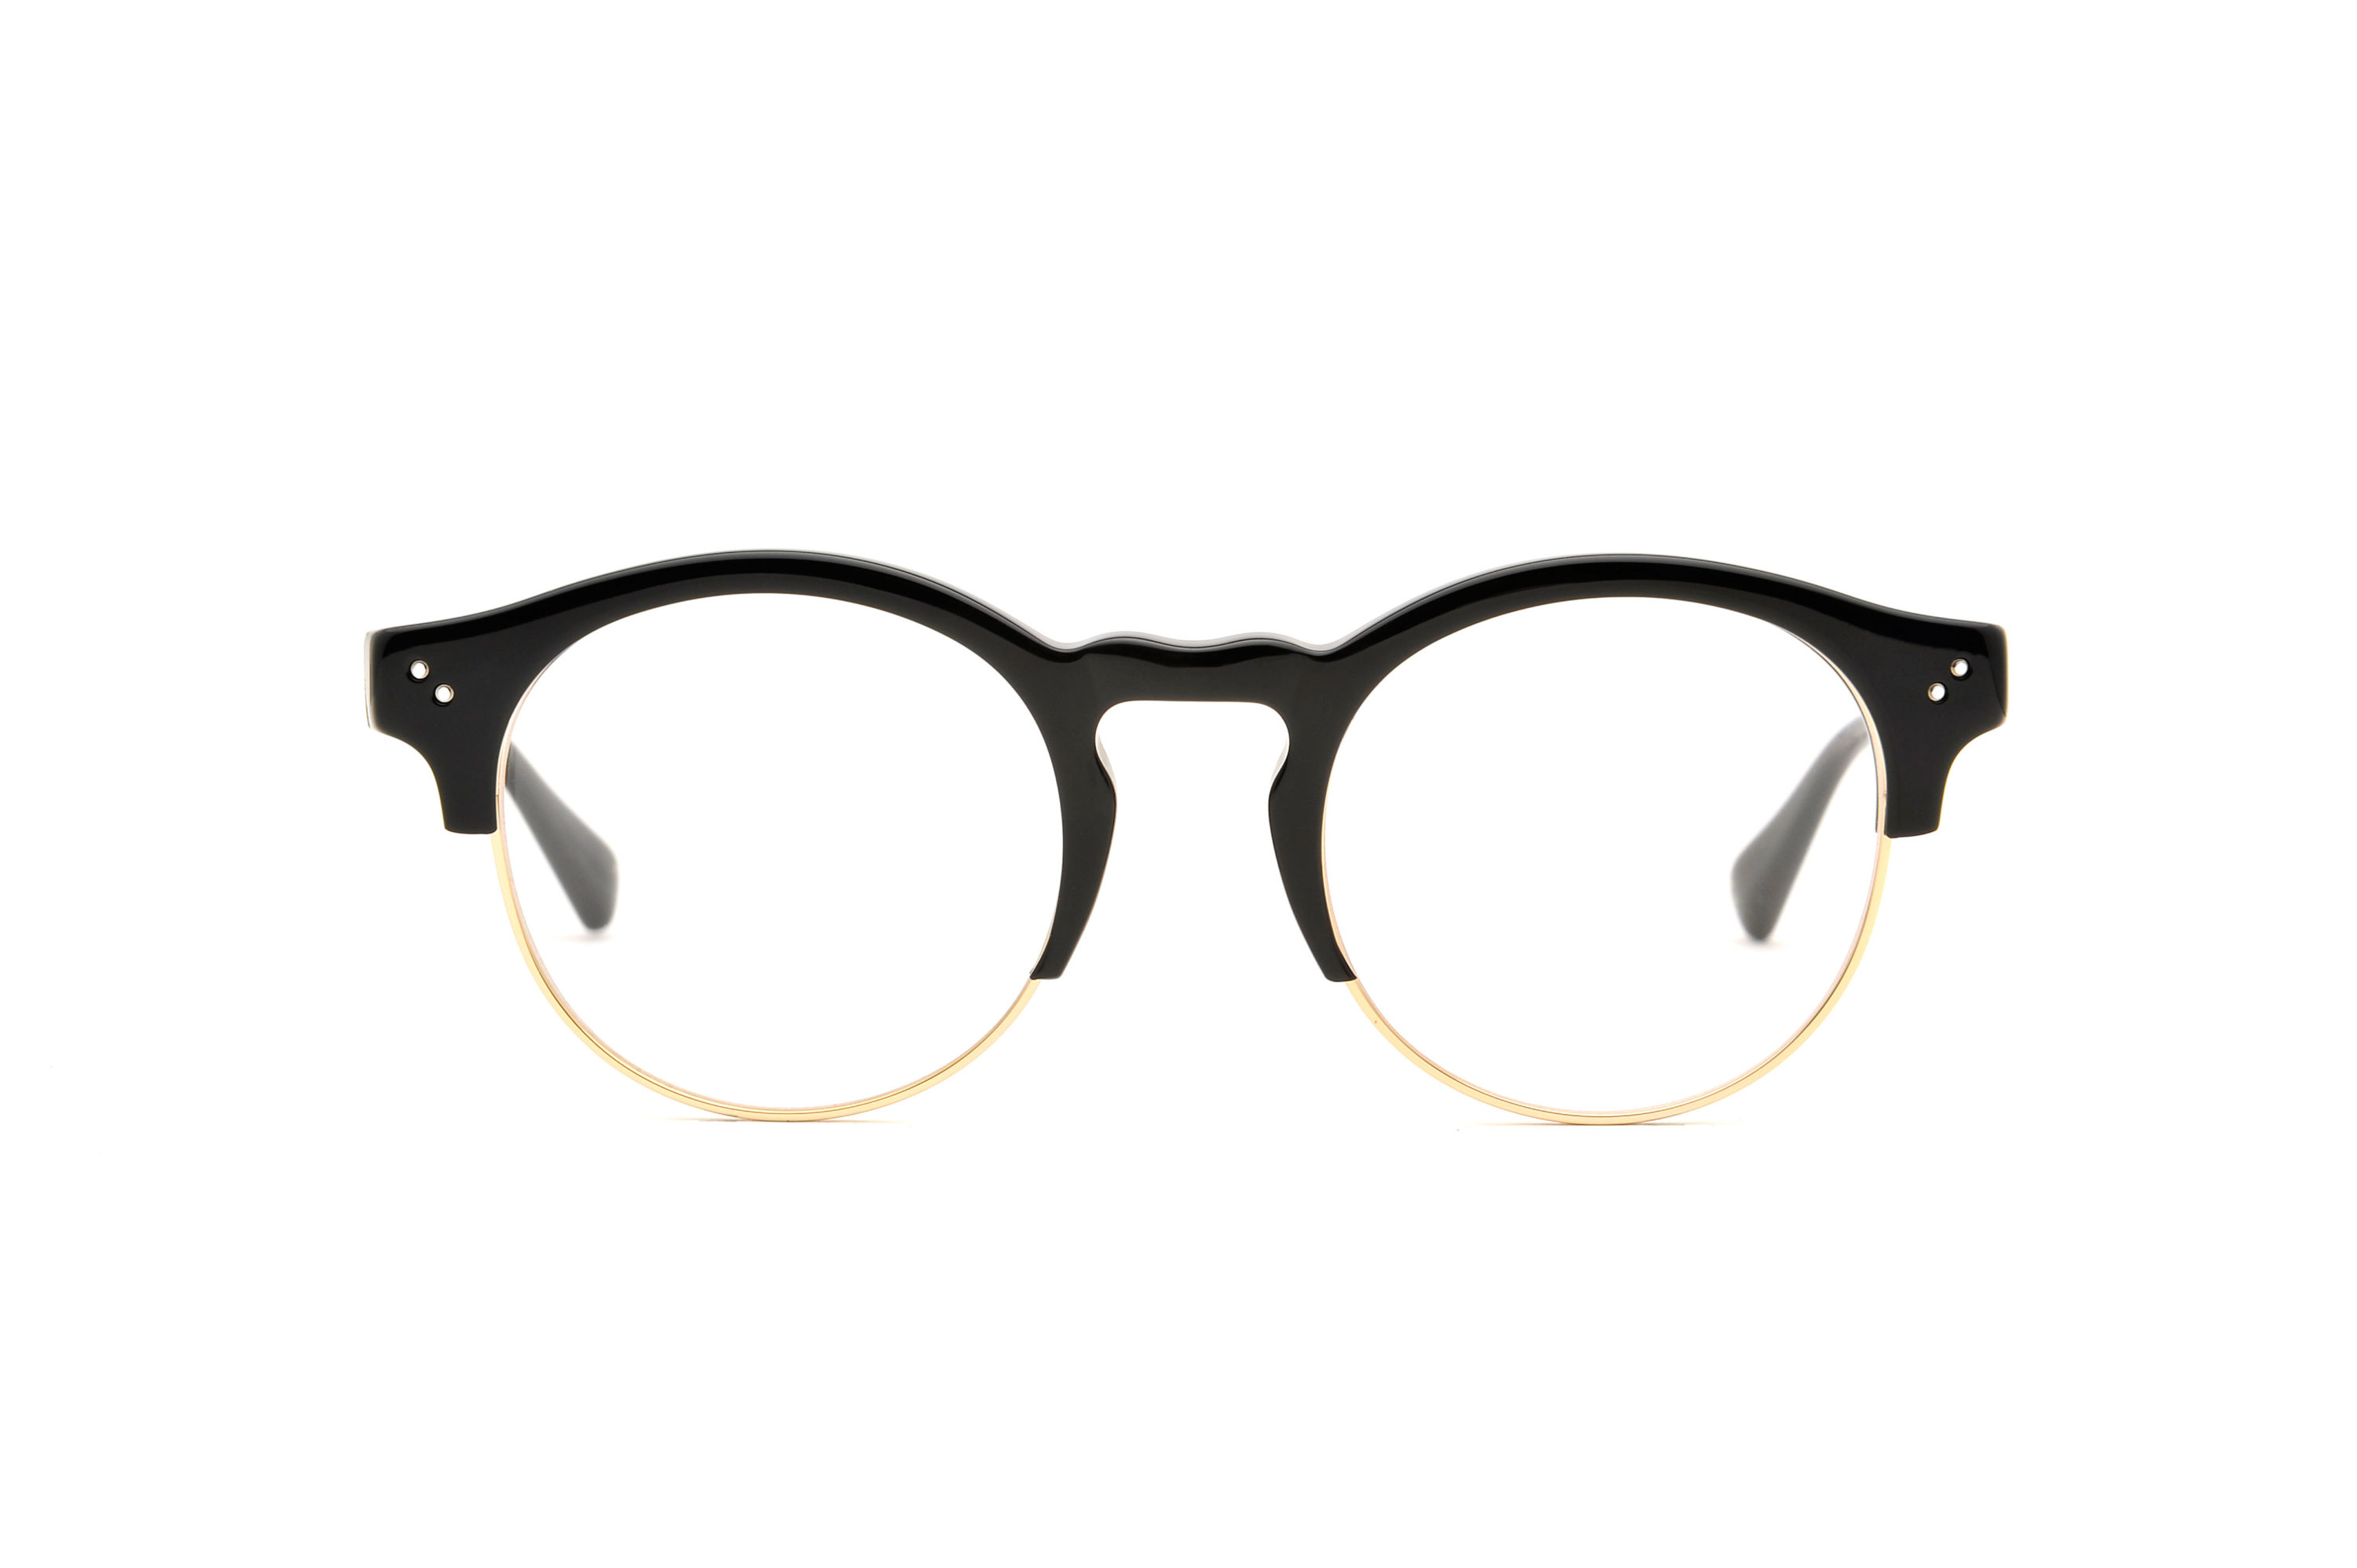 River acetate/metal rounded black sunglasses by GIGI Studios